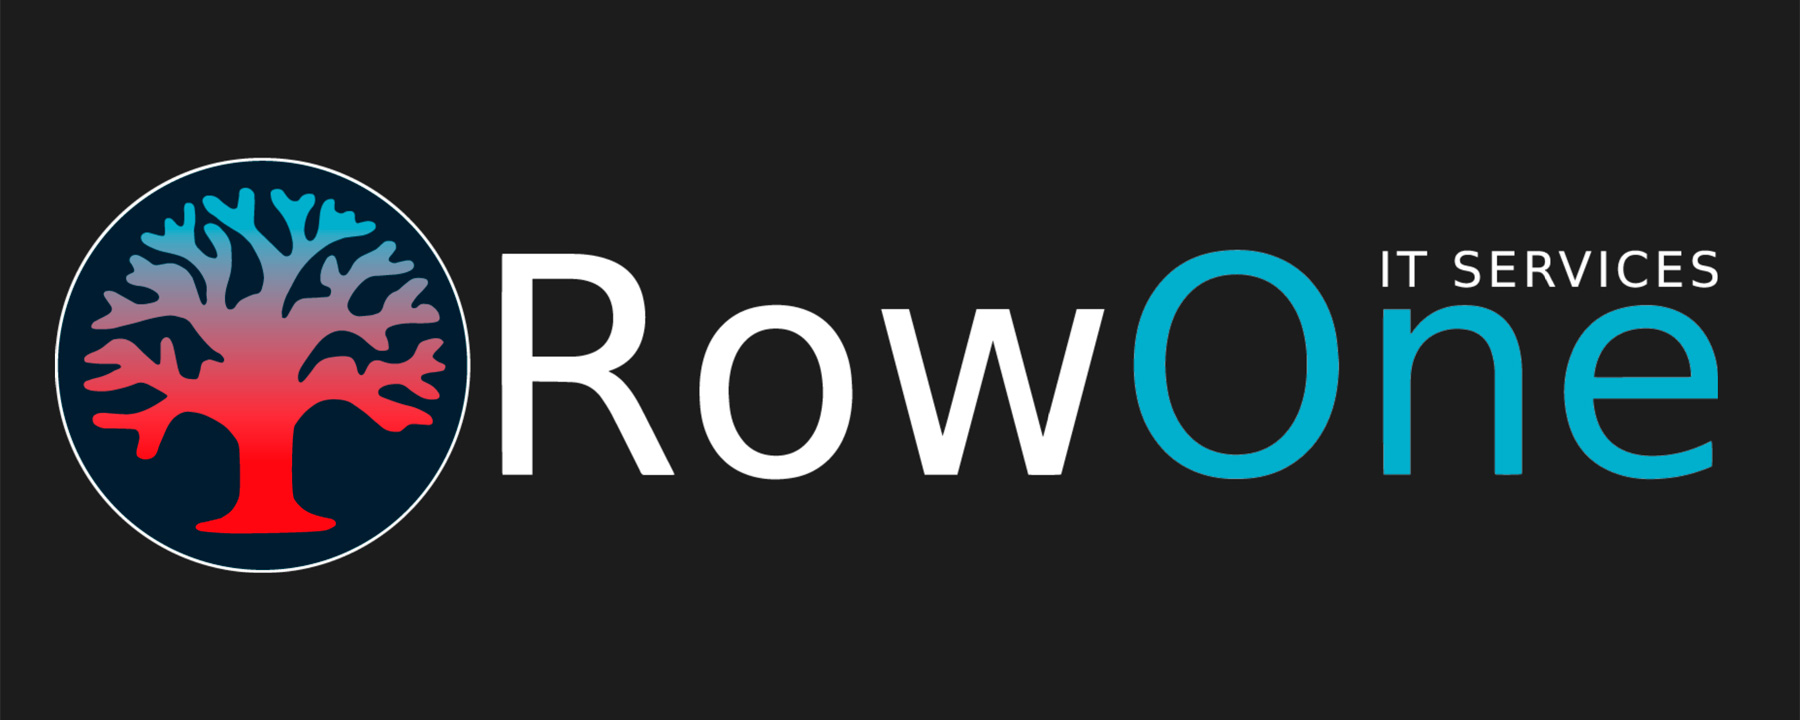 RowOne-IT-Services